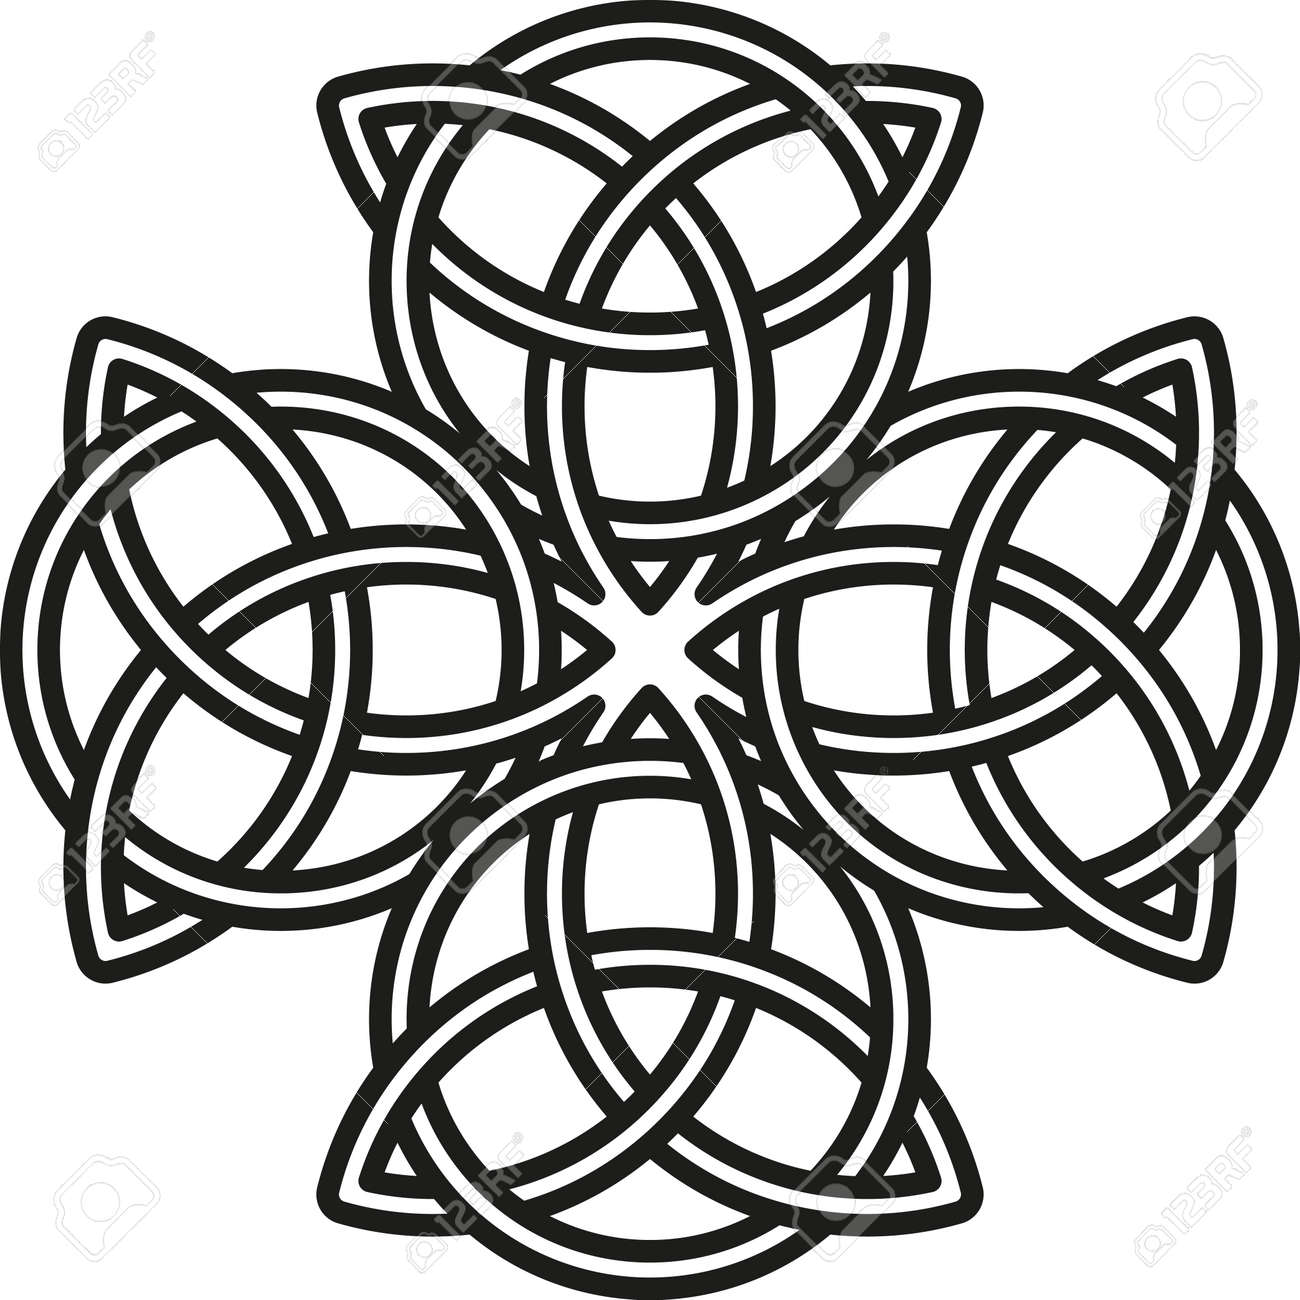 celtic cross the stylized image of a clover element of rh 123rf com ornate celtic cross vector celtic cross vector eps